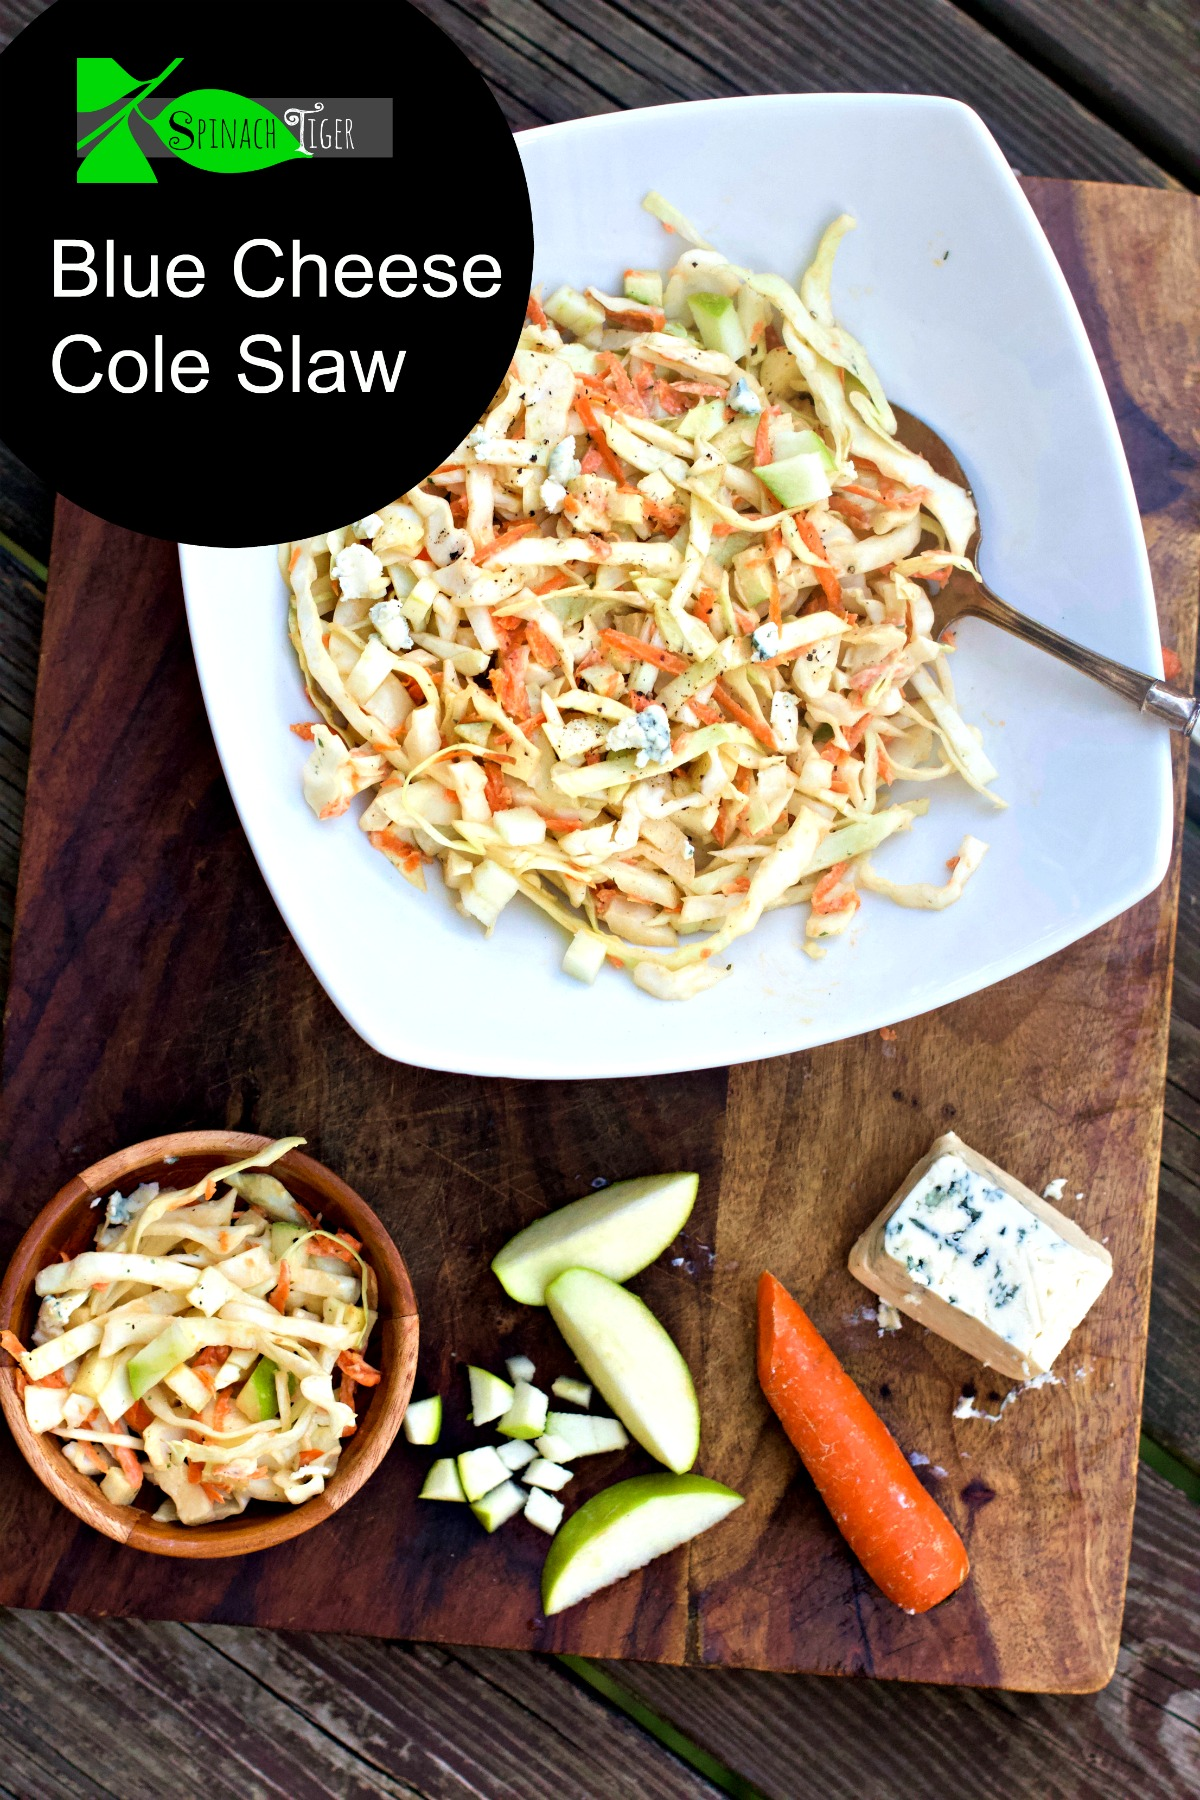 Blue Cheese Cole Slaw from Spinach Tiger